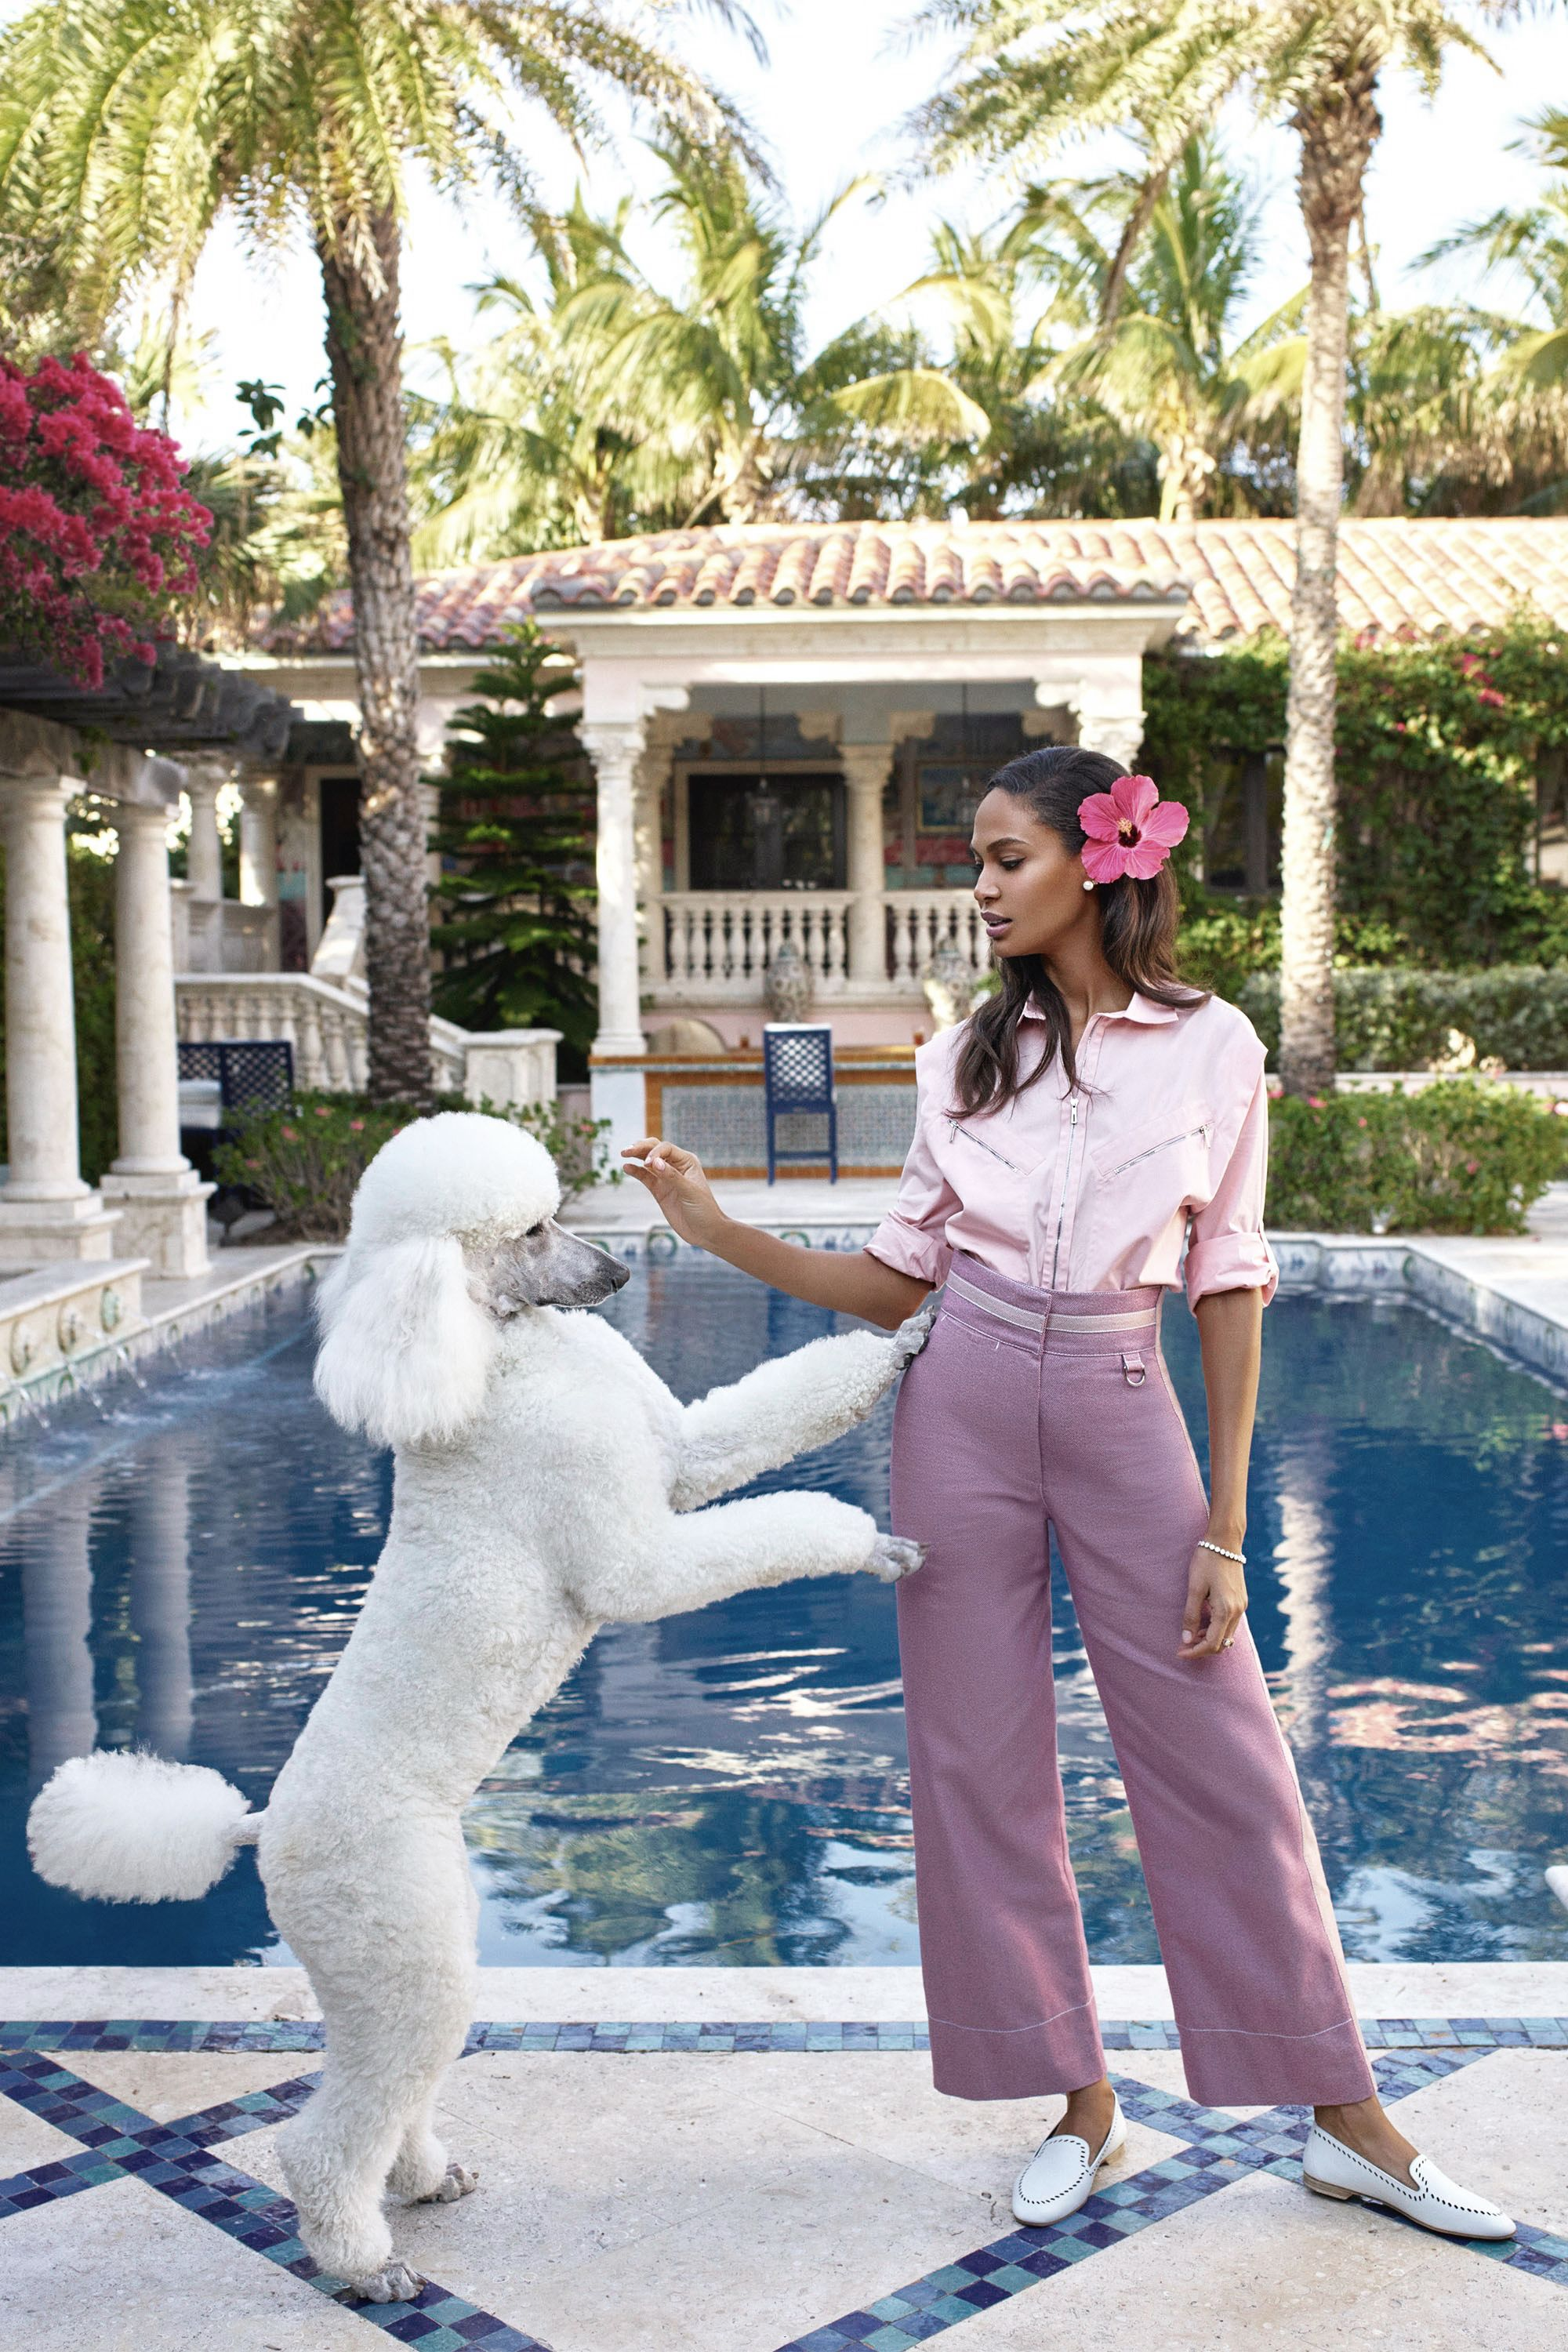 lowest price f3277 6109c By Victoria Berezhna   Fashion Editorial  Joan Smalls by Mariano Vivanco  for Harper s Bazaar May US 2017 - a Slim Aarons inspired shoot